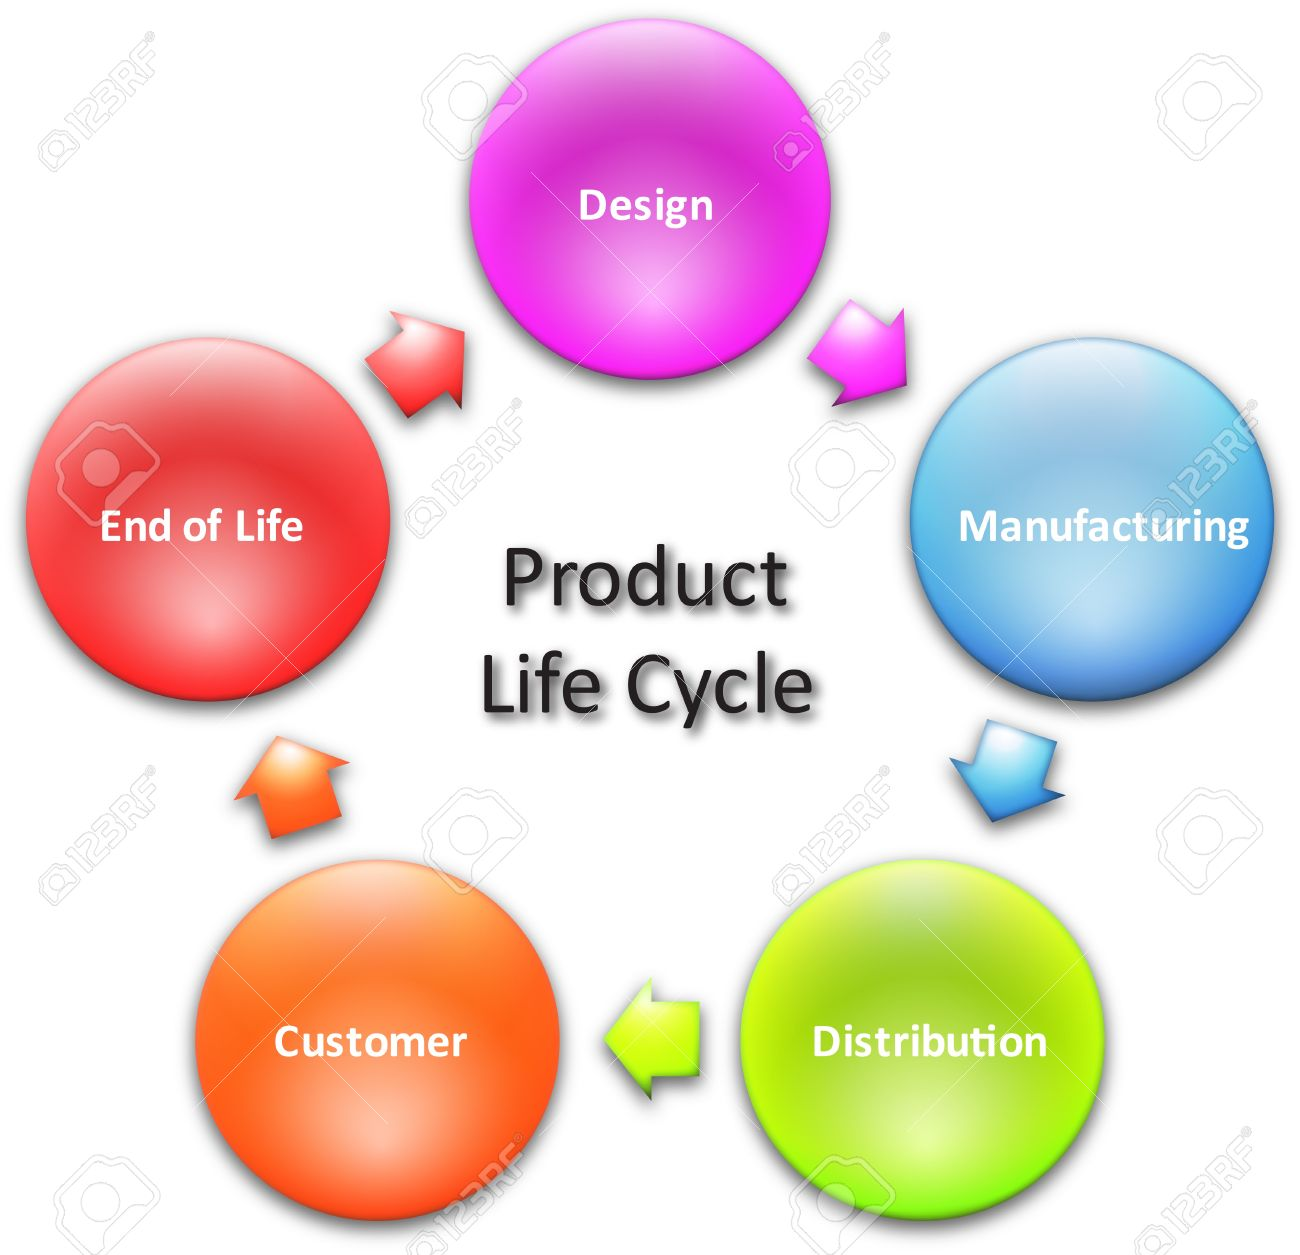 Product lifecycle marketing business diagram management concept illustration product lifecycle marketing business diagram management concept chart illustration ccuart Choice Image